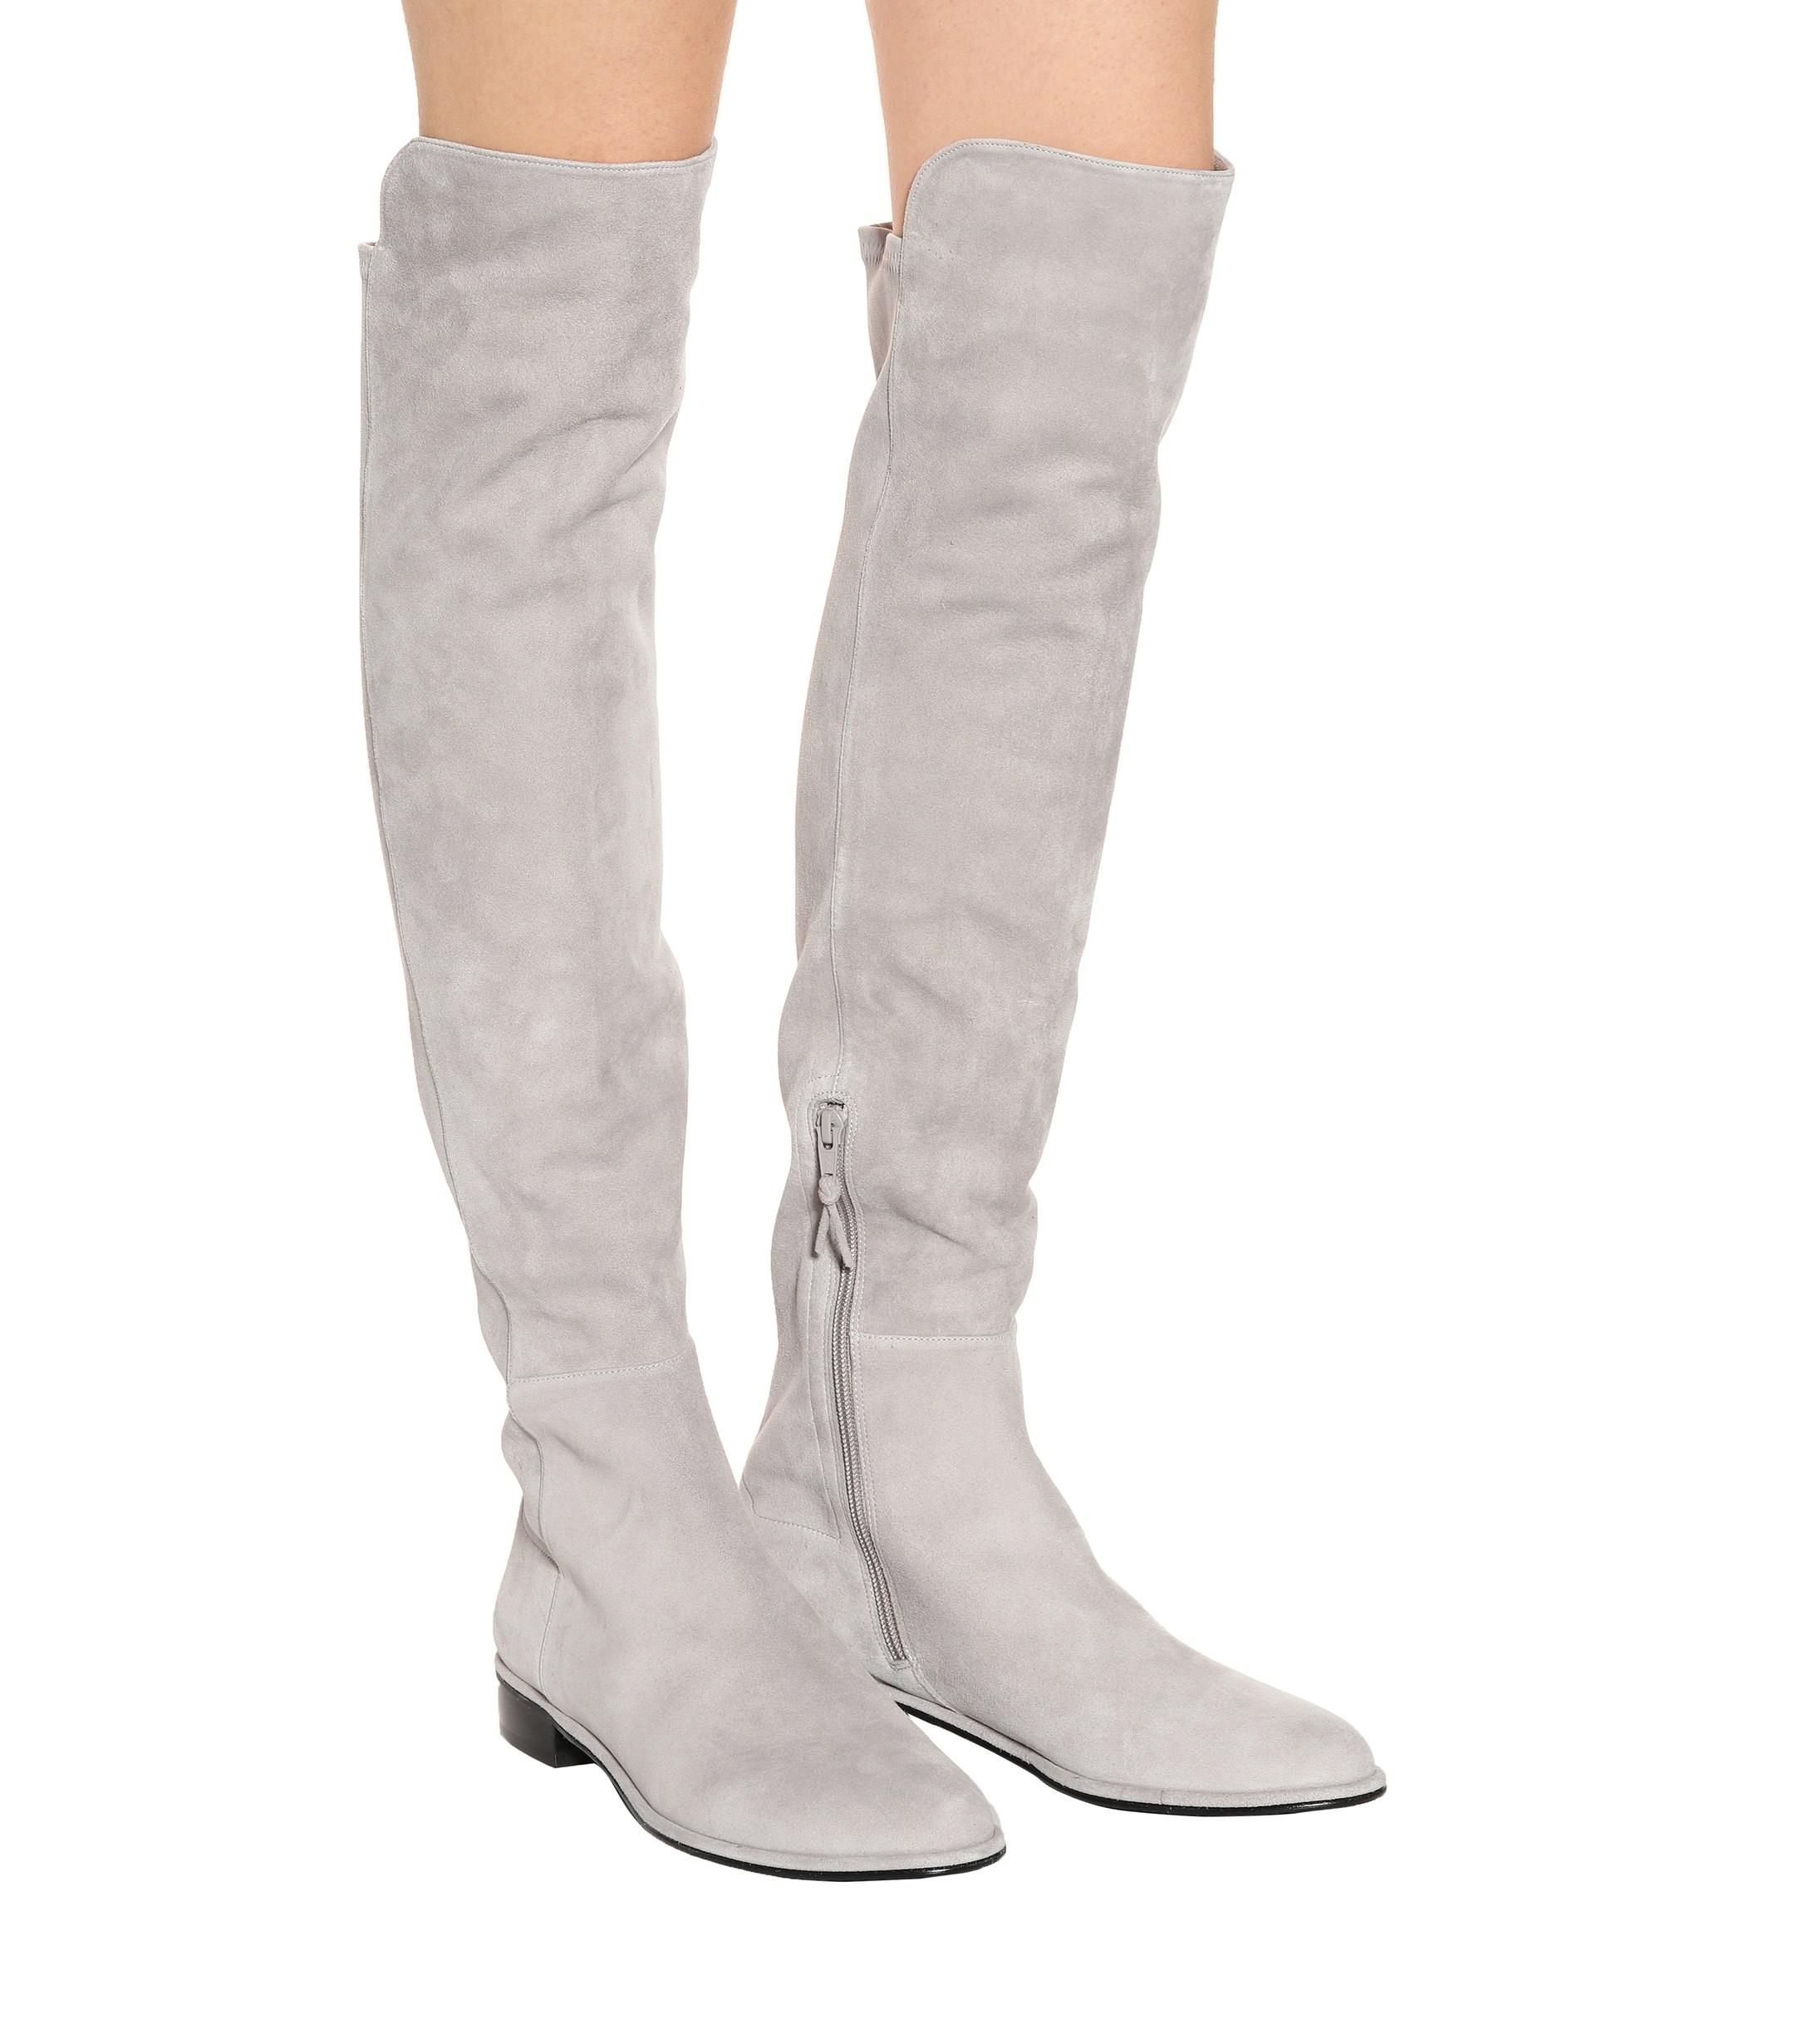 508a2d960f5 Lyst stuart weitzman allgood skimmer over the knee boots in gray jpg  2176x2460 Stuart weitzman allgood